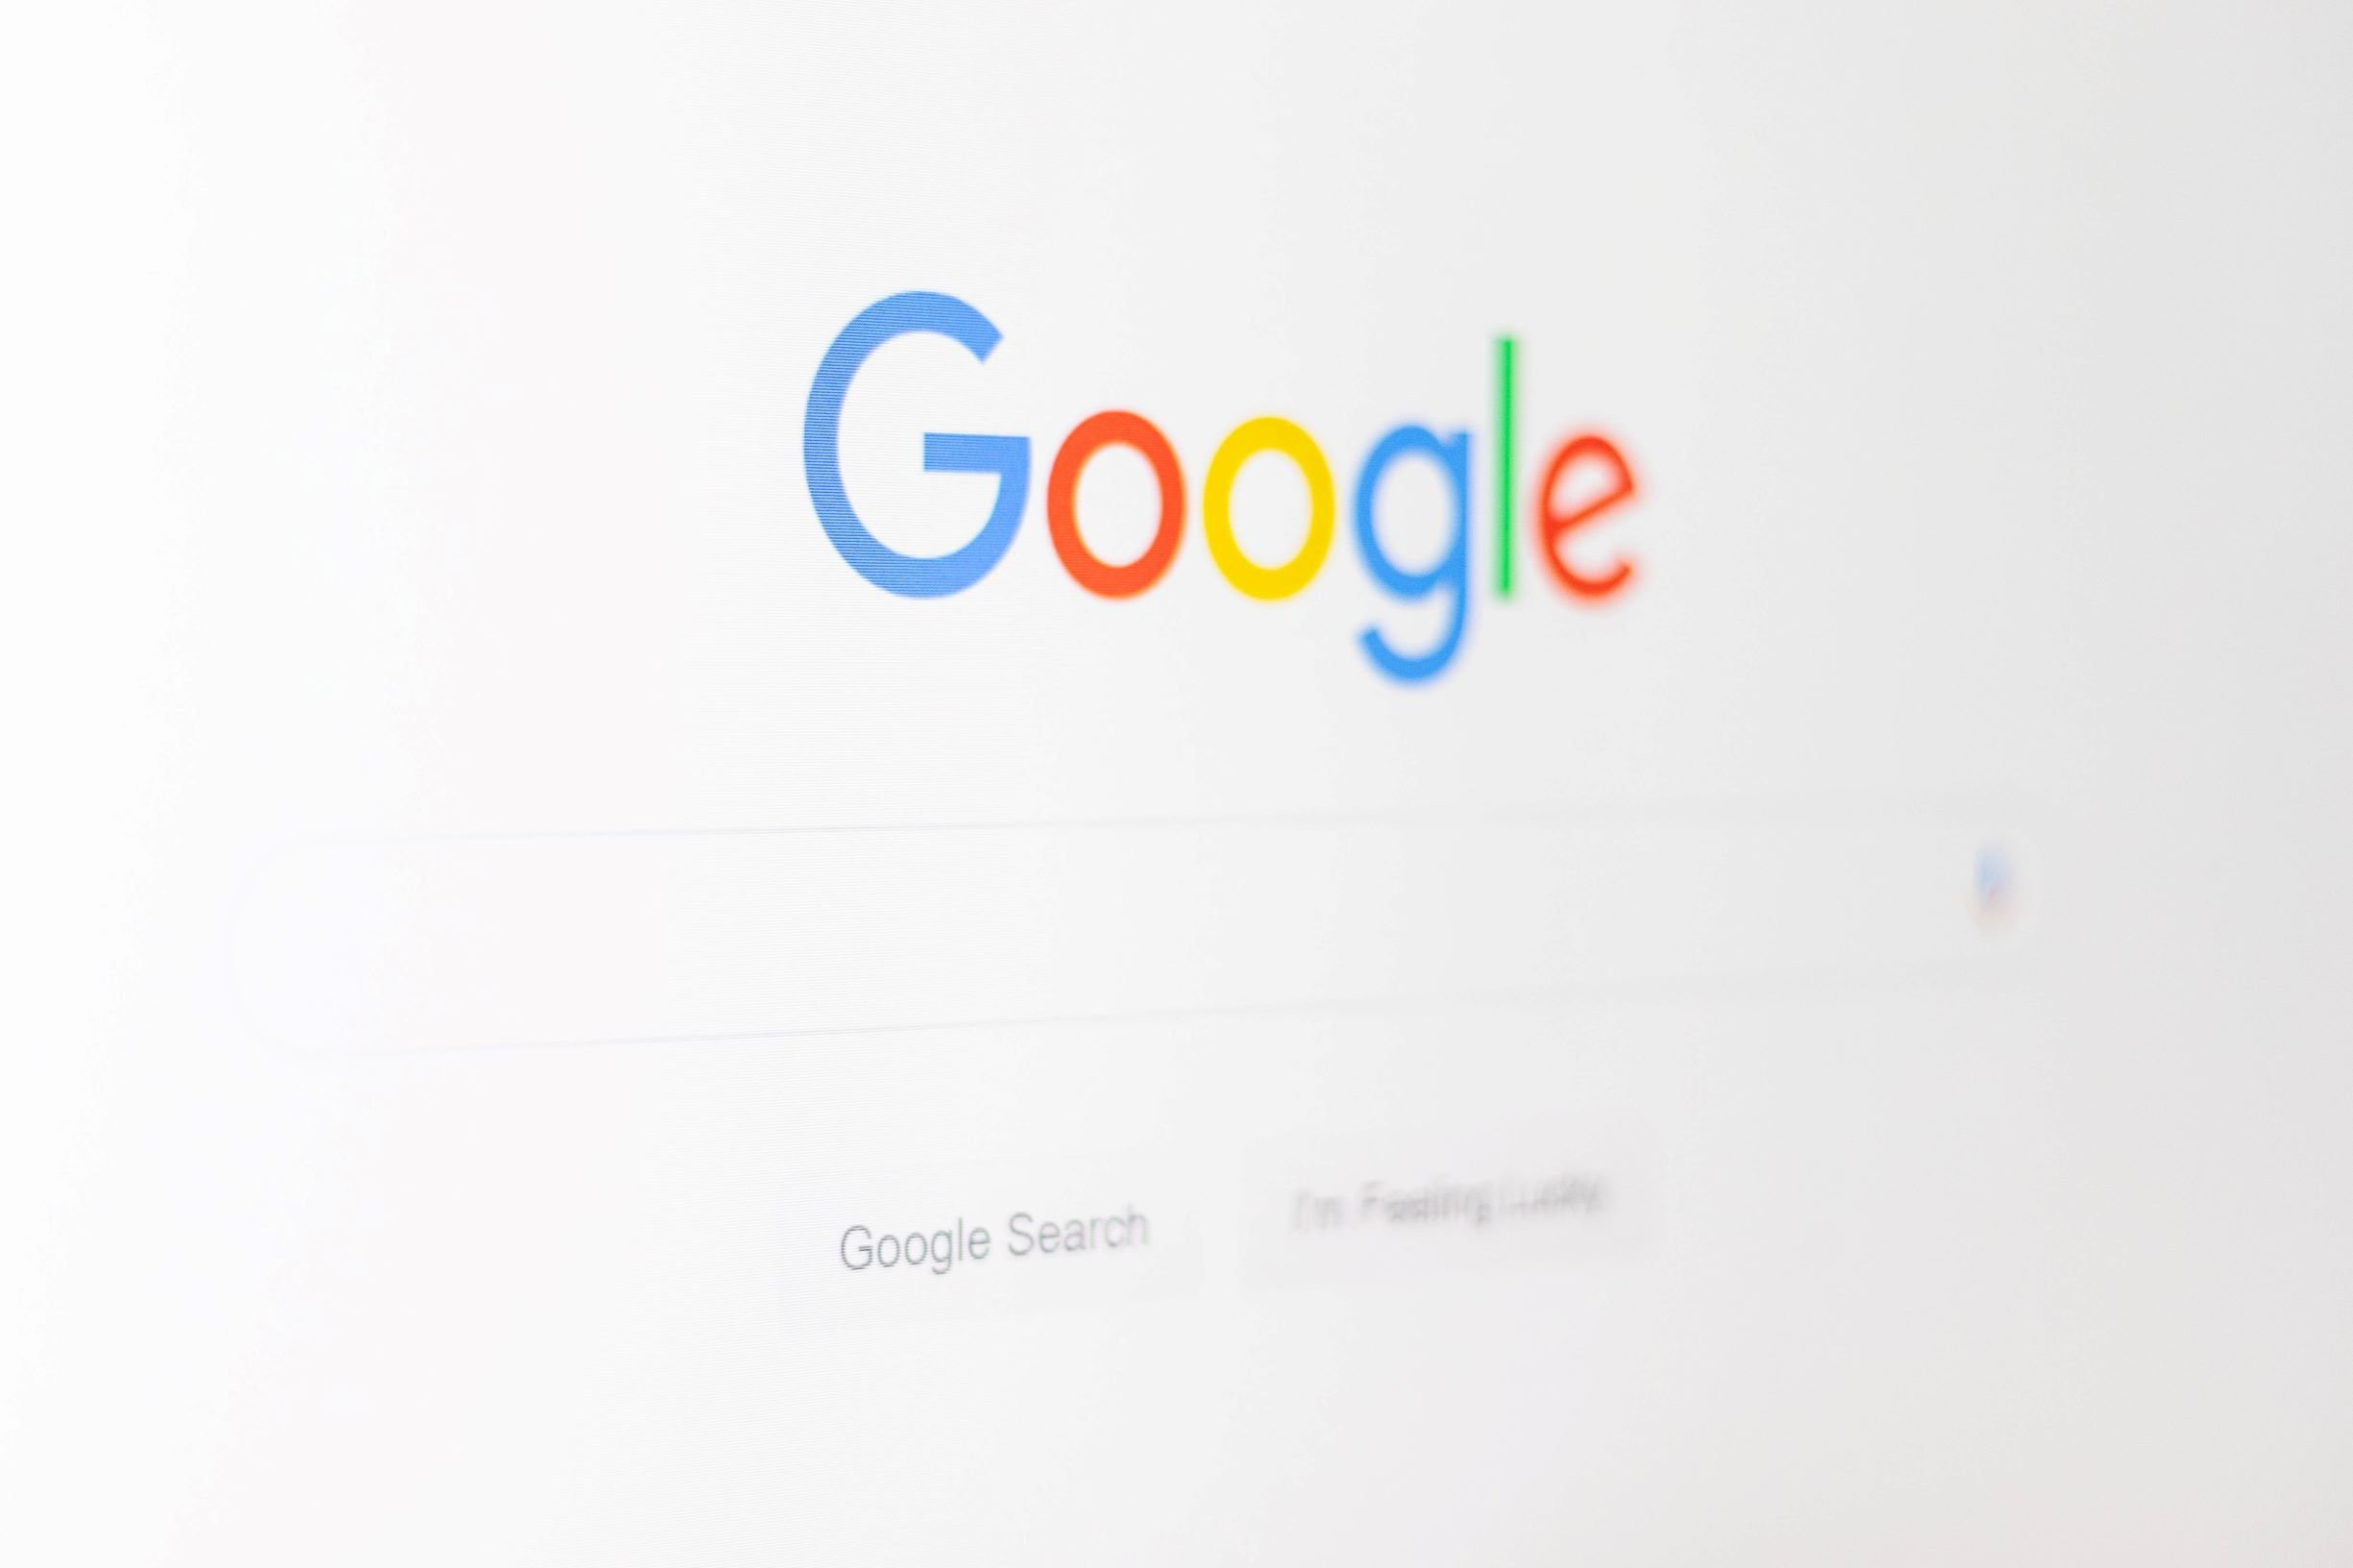 Google search engine homepage with search bar for users